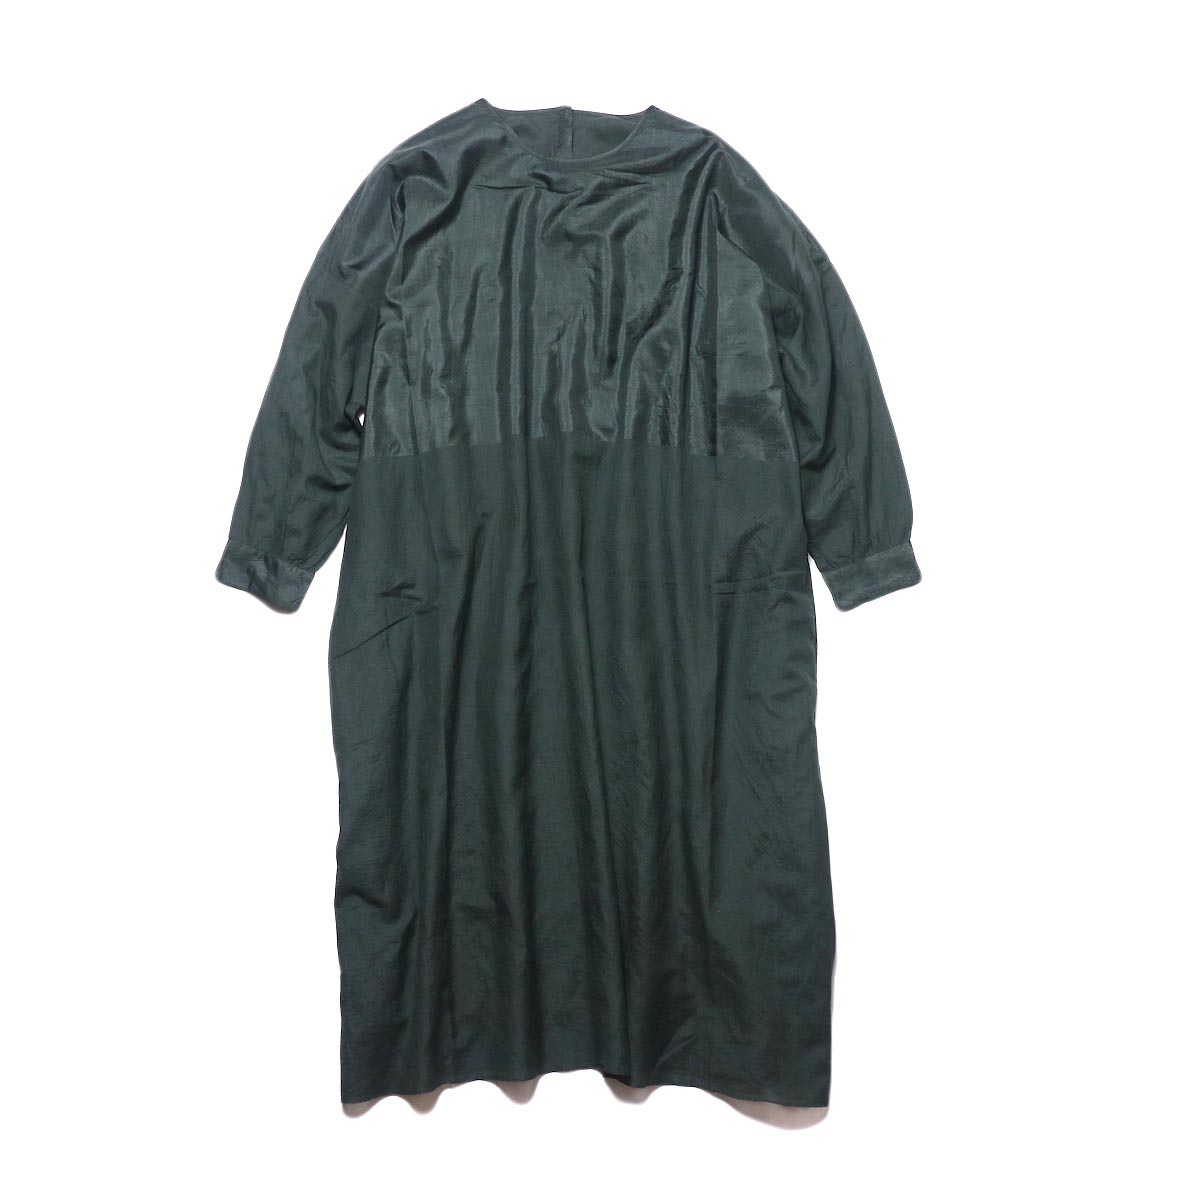 maison de soil / HAND WOVEN COTTON SILK × SILK PLAIN DROP SHOULDER DRESS (green)